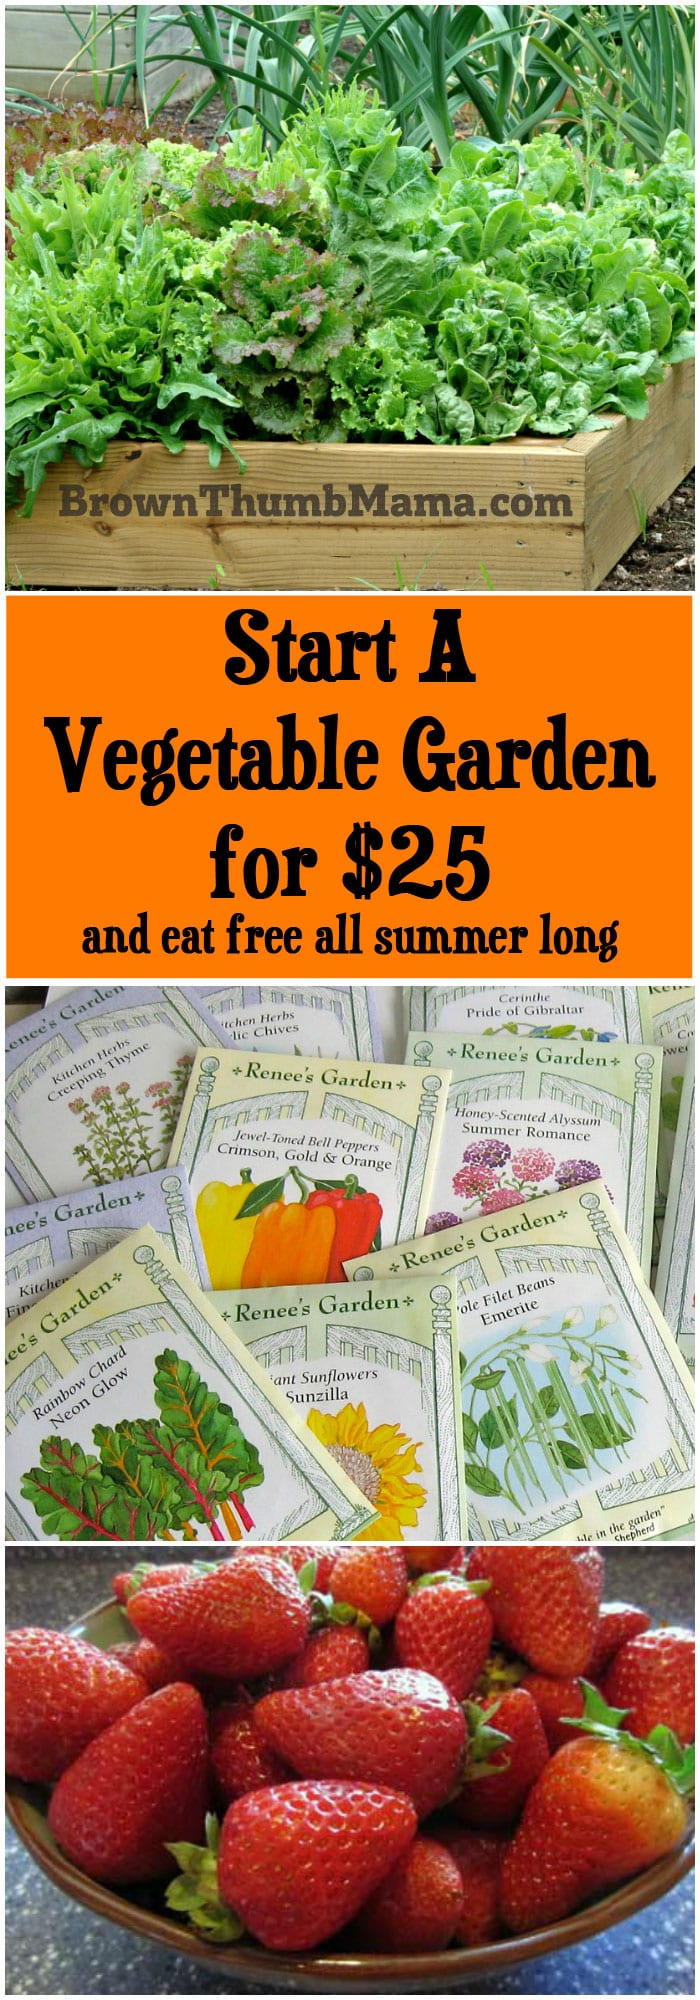 Start A Vegetable Garden For $25